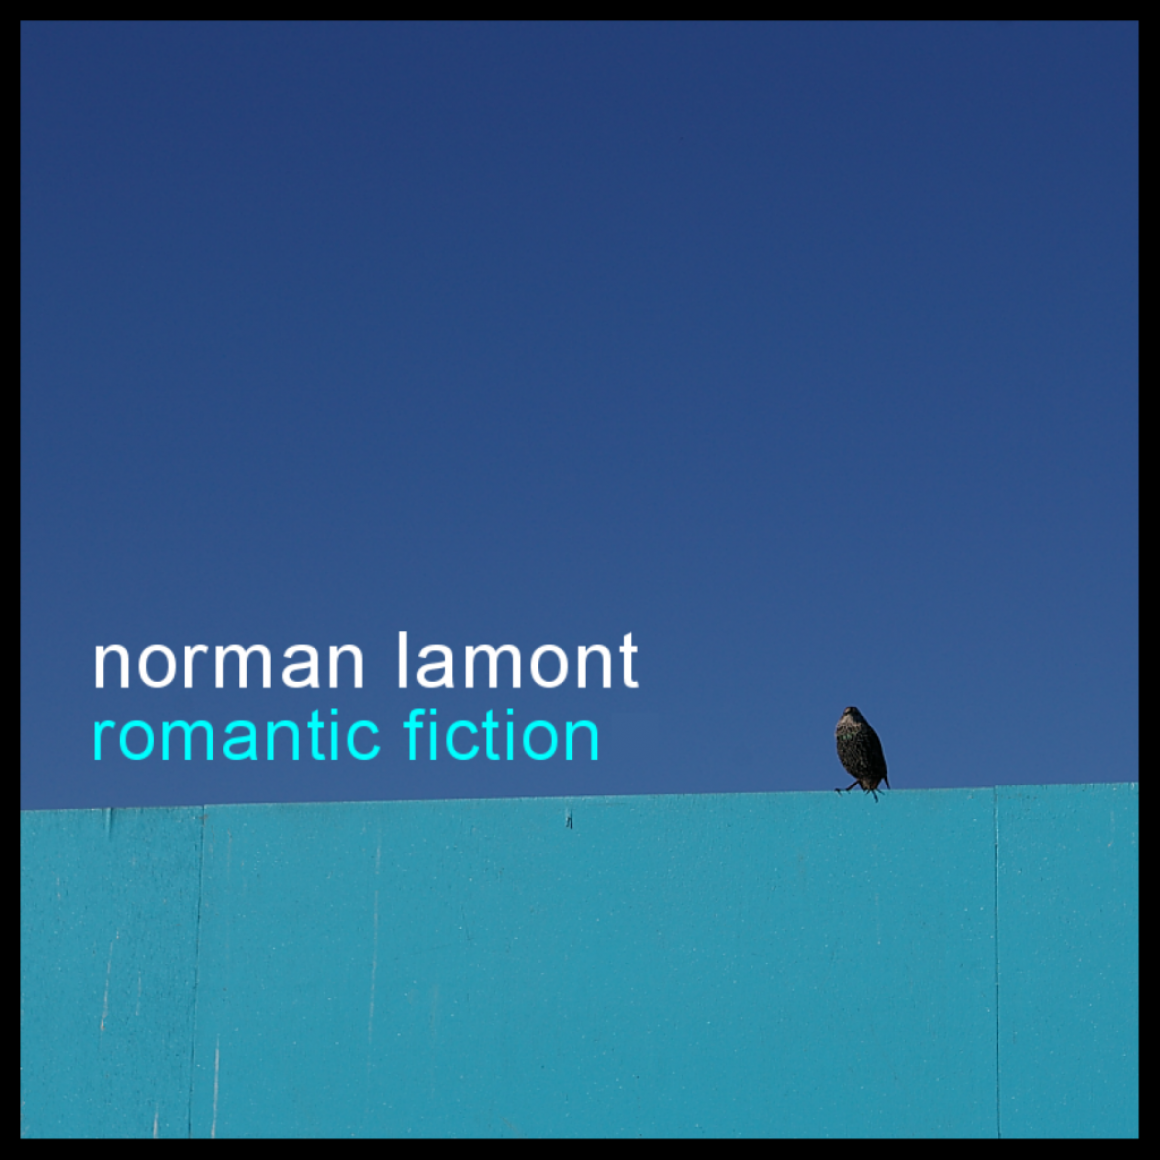 Romantic Fiction design - bird sitting on a blue fence under a darker blue sky